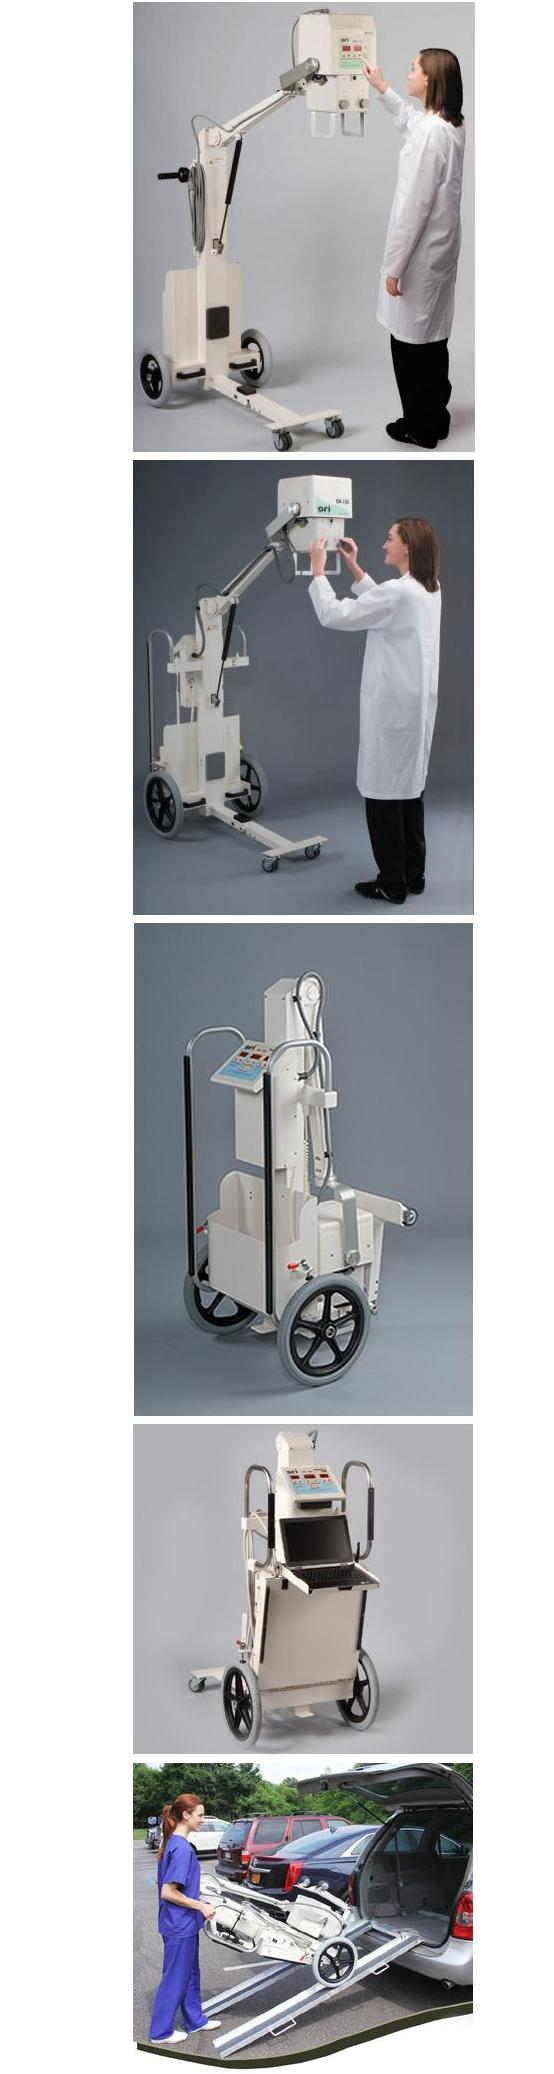 SRI Portable X-Ray Systems